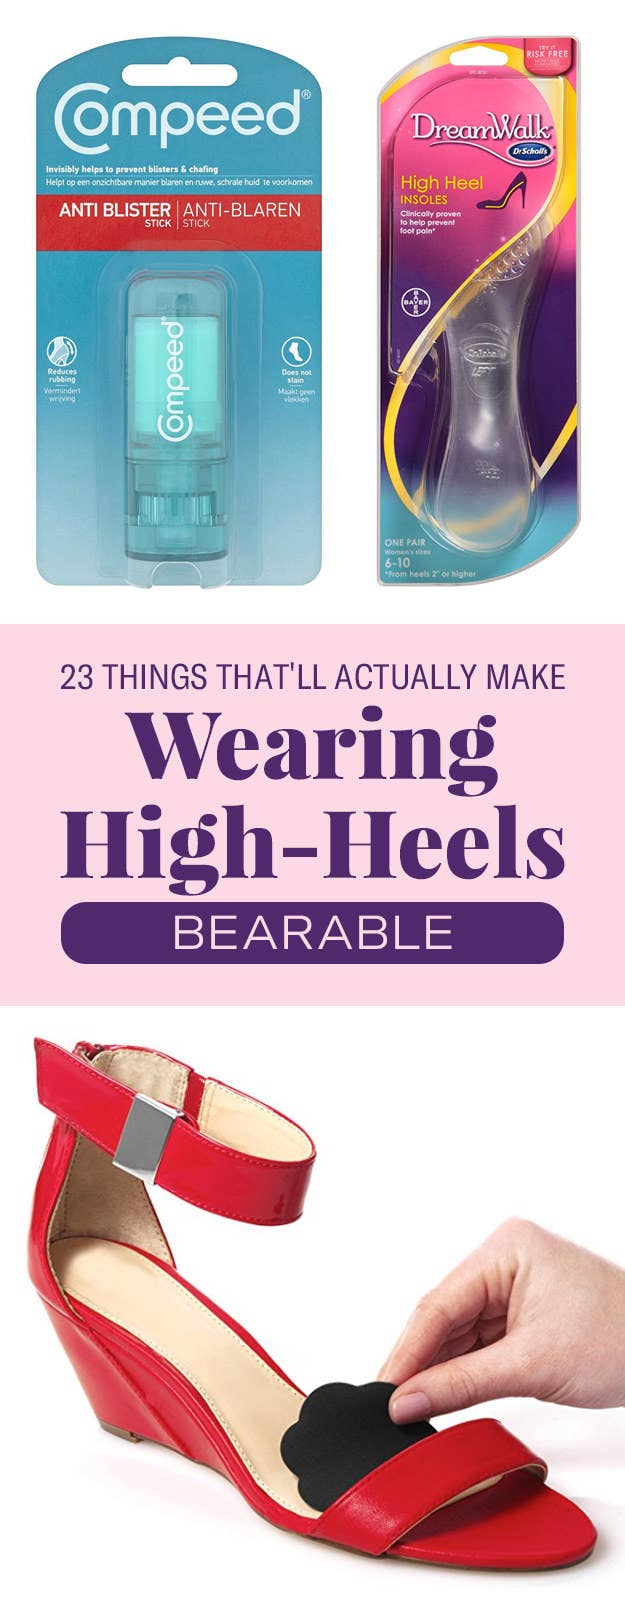 Things Thatll Actually Make Wearing High Heels Bearable - 23 pictures that will make you whole again